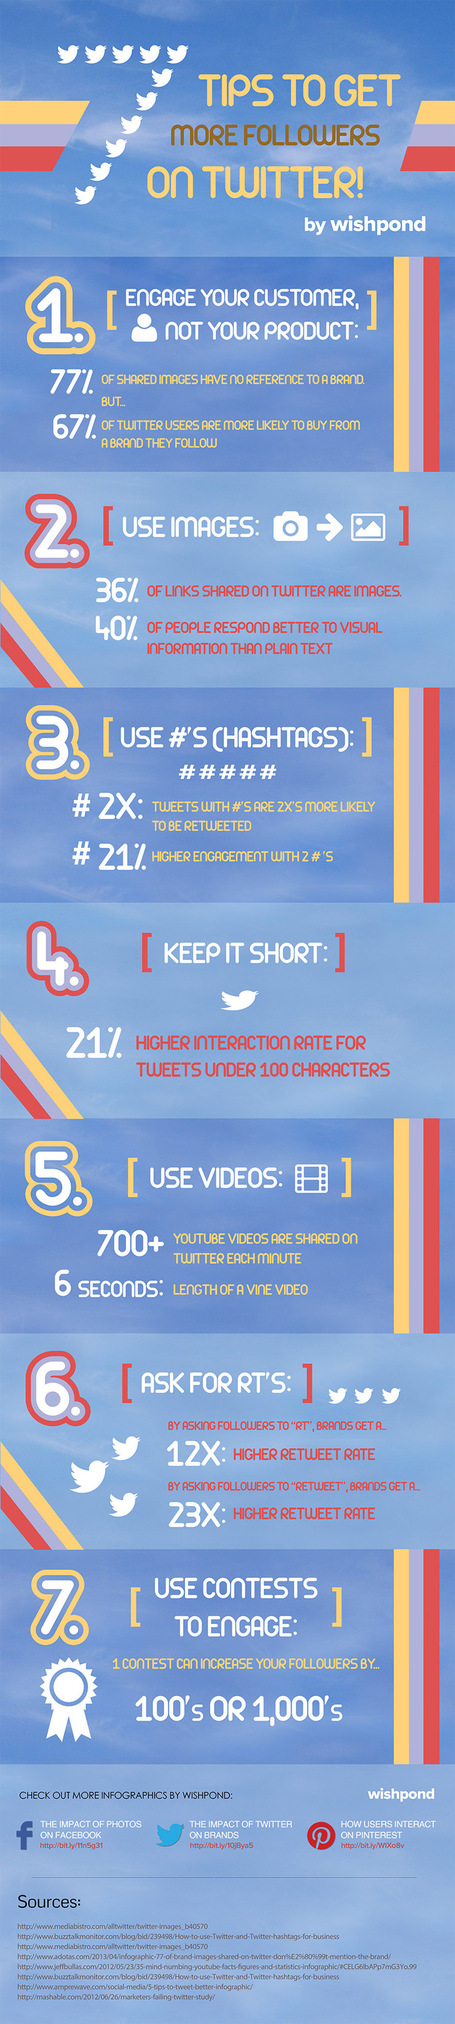 Top 7 Tips to Get More Followers on Twitter – infographic /@BerriePelser | WordPress Google SEO and Social Media | Scoop.it